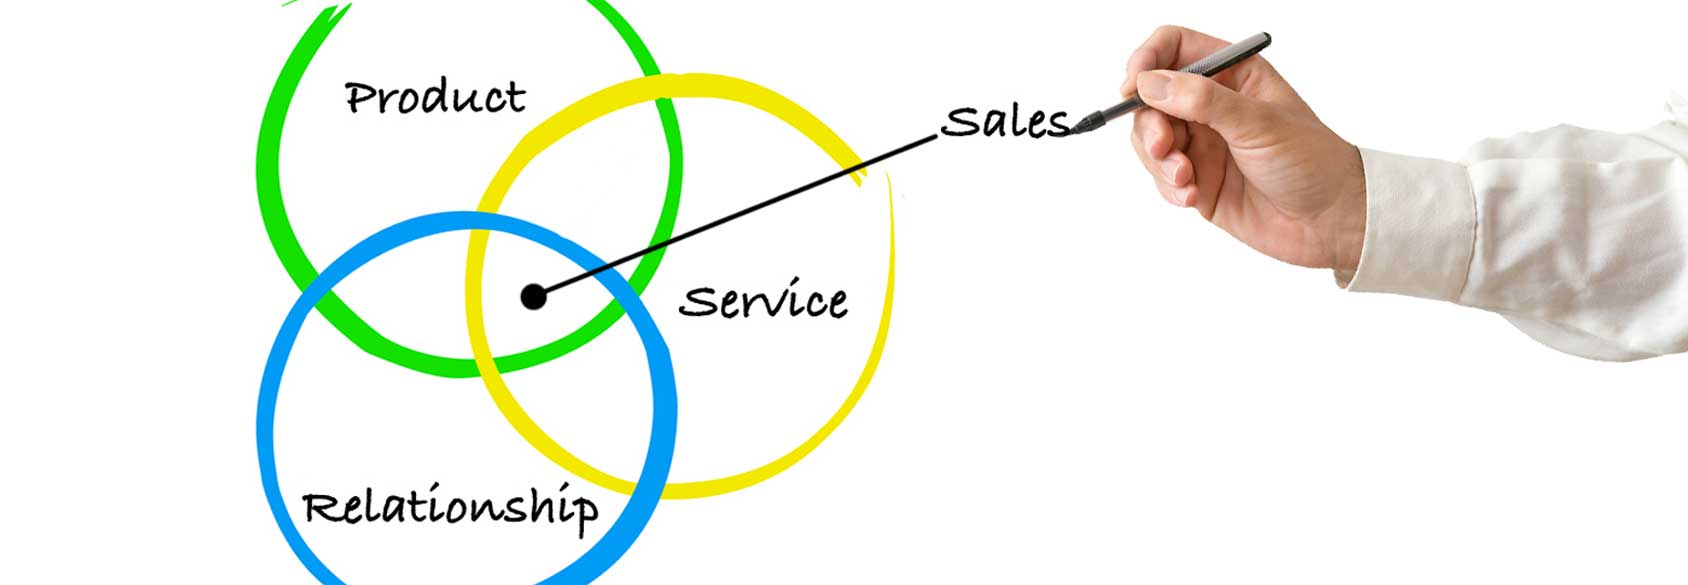 A sales department is the direct link between a company's product or service and its customers. Having a strong sales team is crucial. A sales department is responsible for making sales, growing the business, retaining existing customers and maintaining strong client relationships.